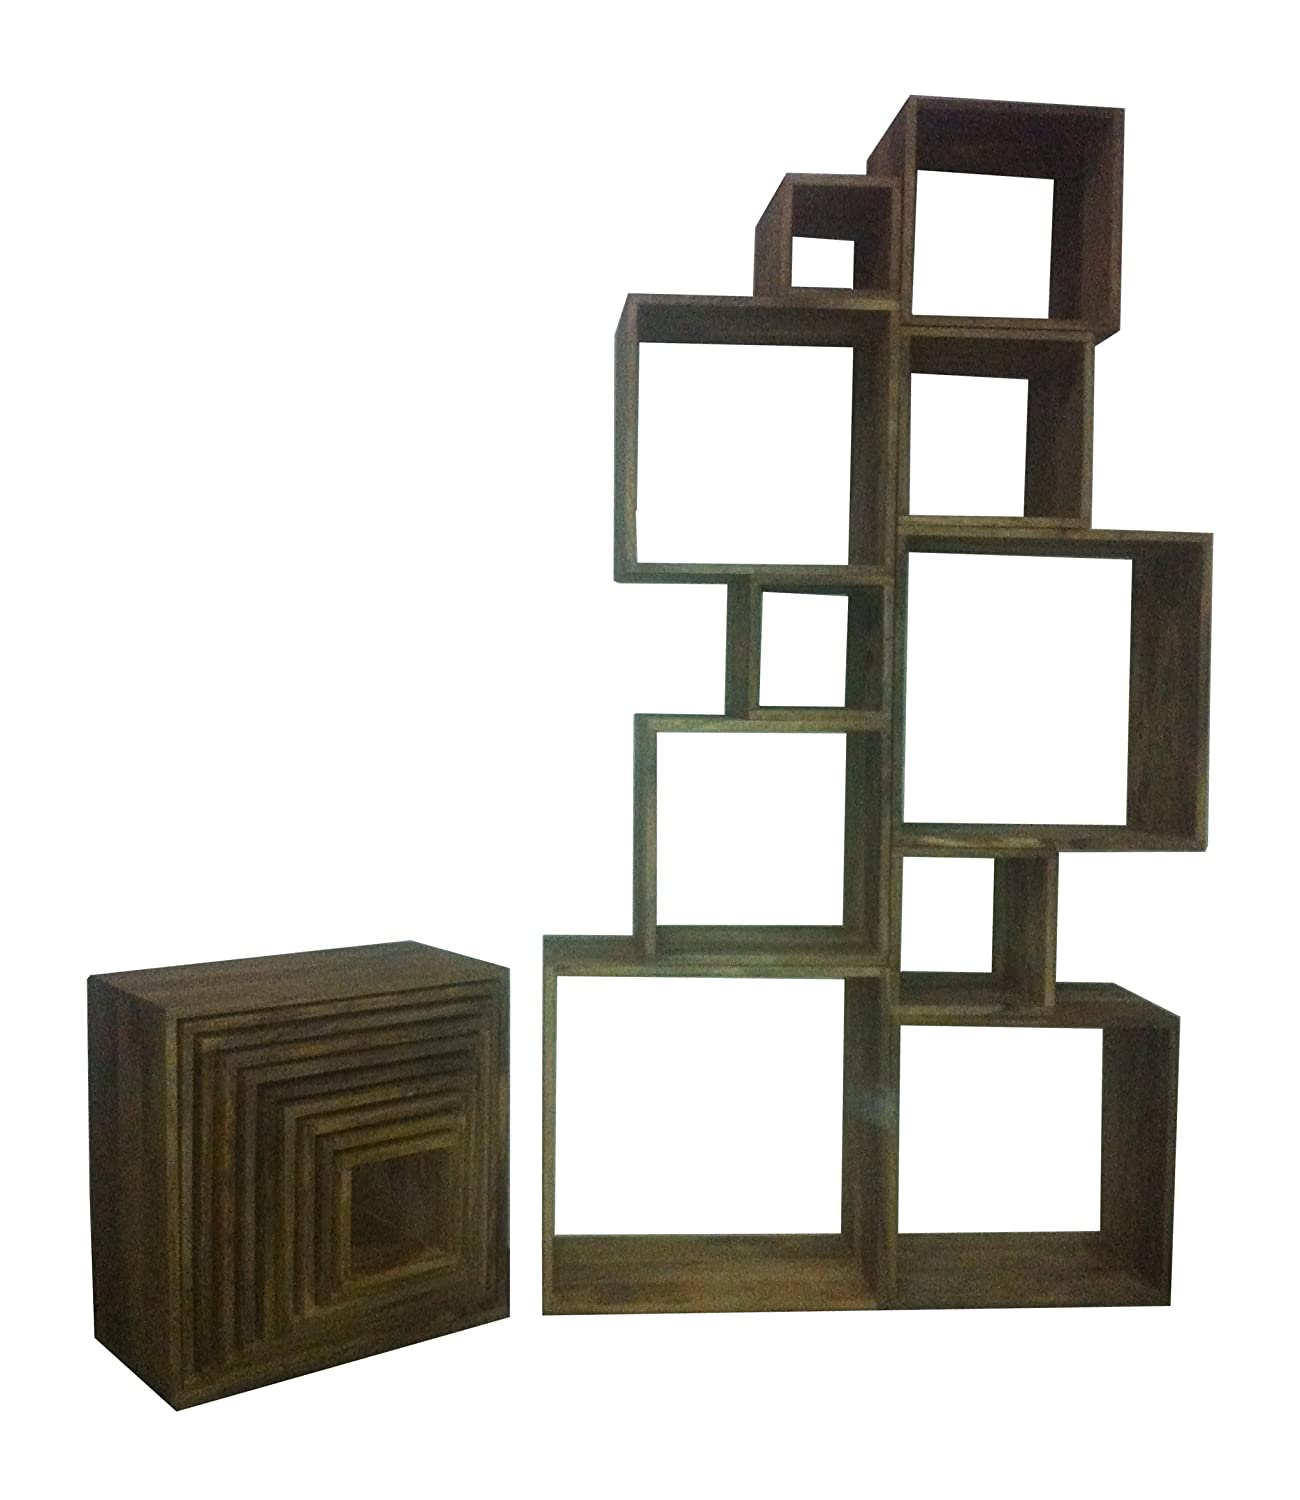 wooden cubes furniture. Reclaimed Wood Cube Bookshelves / Bookcases Made From Solid Recycled Wood, Available In Natural Rustic Finish.: Amazon.co.uk: Kitchen \u0026 Home Wooden Cubes Furniture